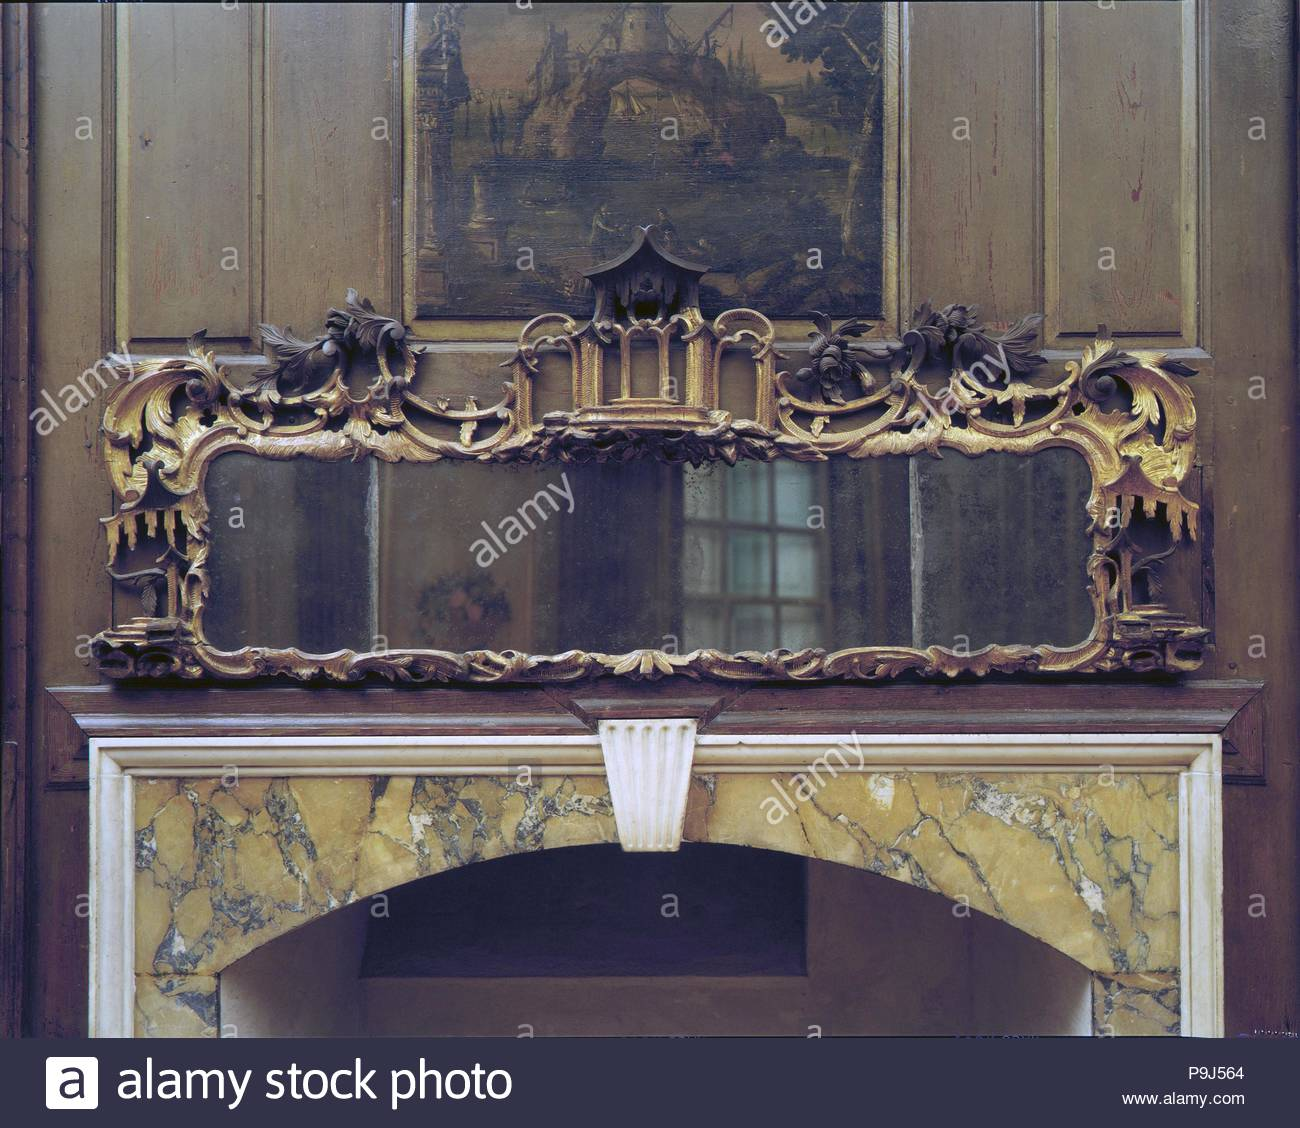 Pavillon Ranke Looking Glass 1750 75 In England Kiefernholz Vergoldeten Putz